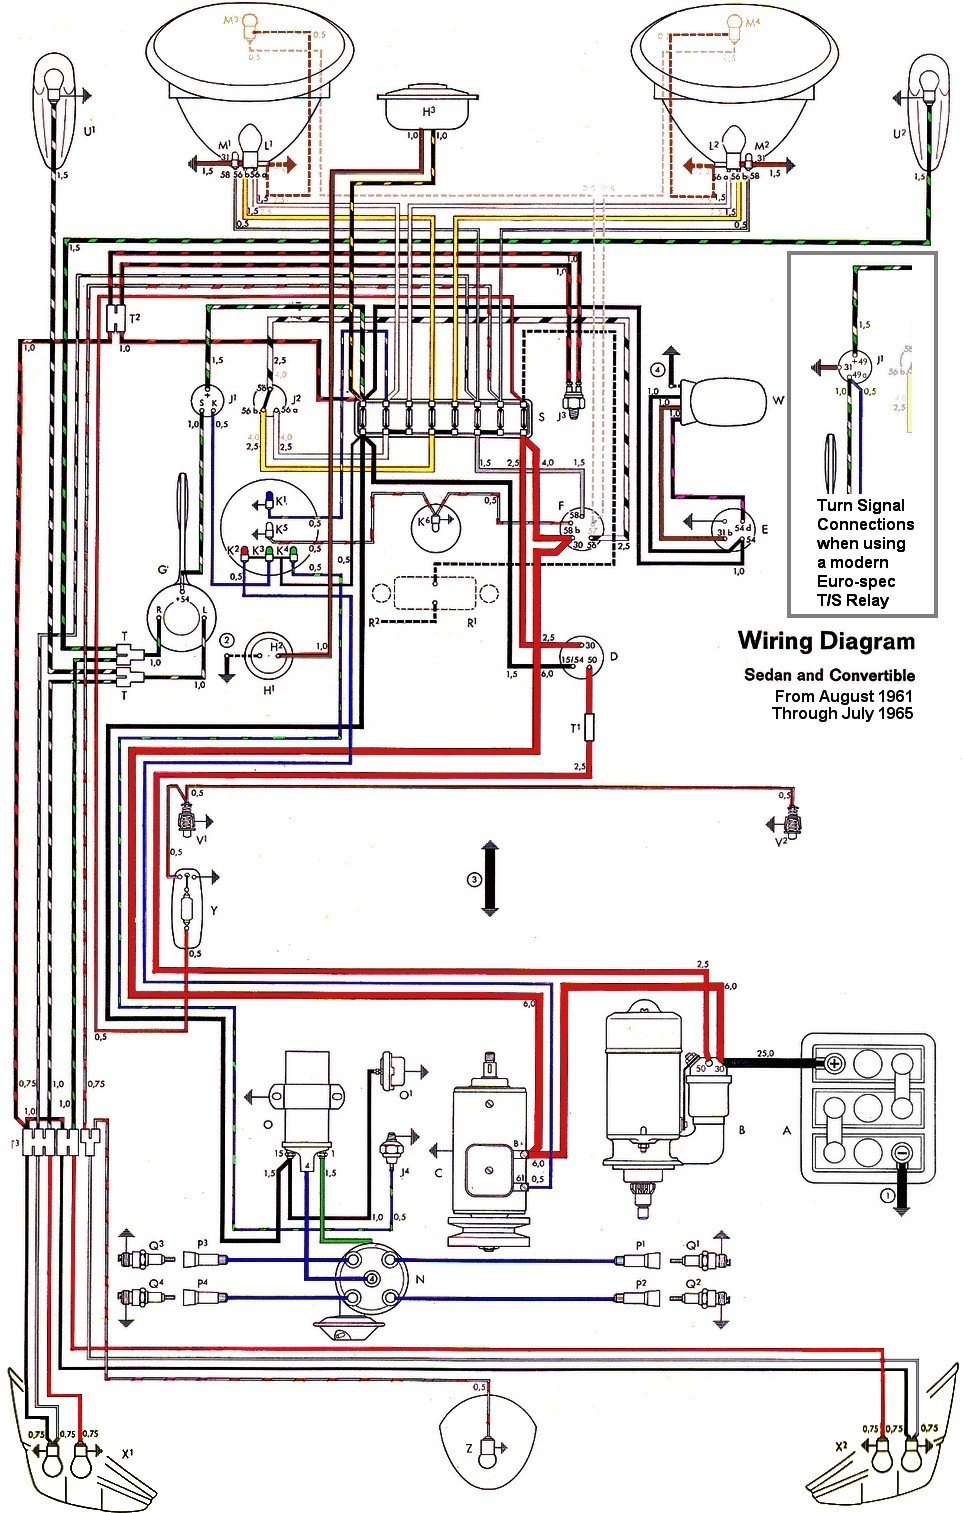 bug_62 65withinset thesamba com type 1 wiring diagrams 1965 vw beetle wiring diagram at nearapp.co